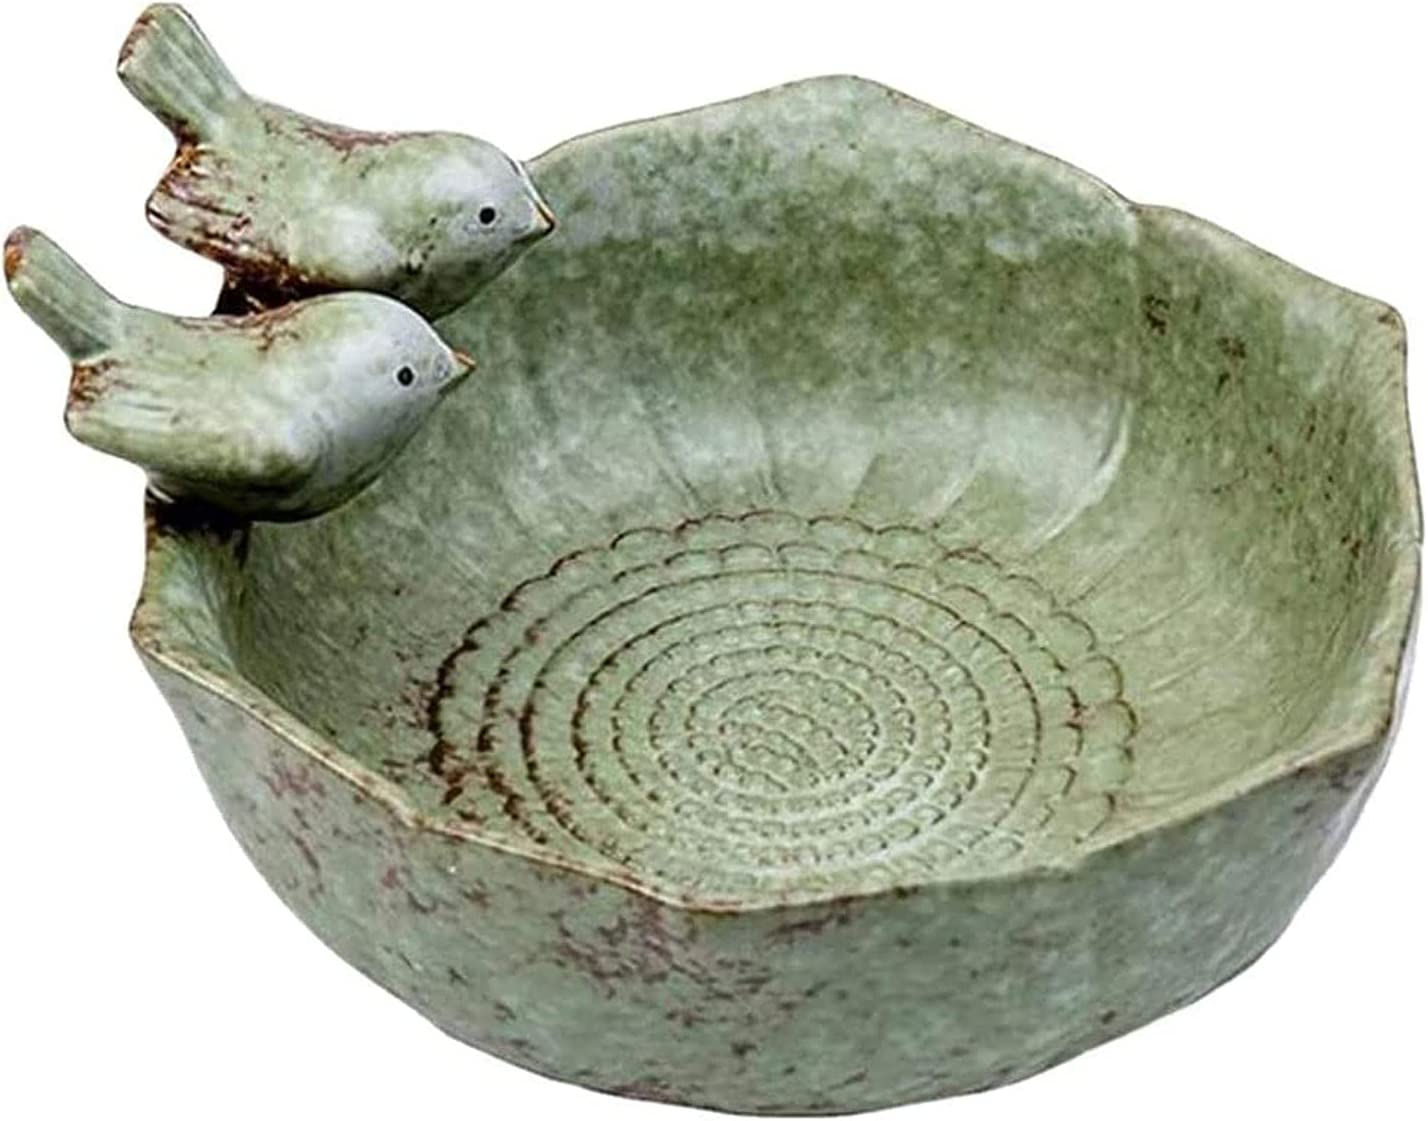 HEY NEW before Max 69% OFF selling Bird Feeder Ceramic Bowl Fruit Container Birds 2 Art Food